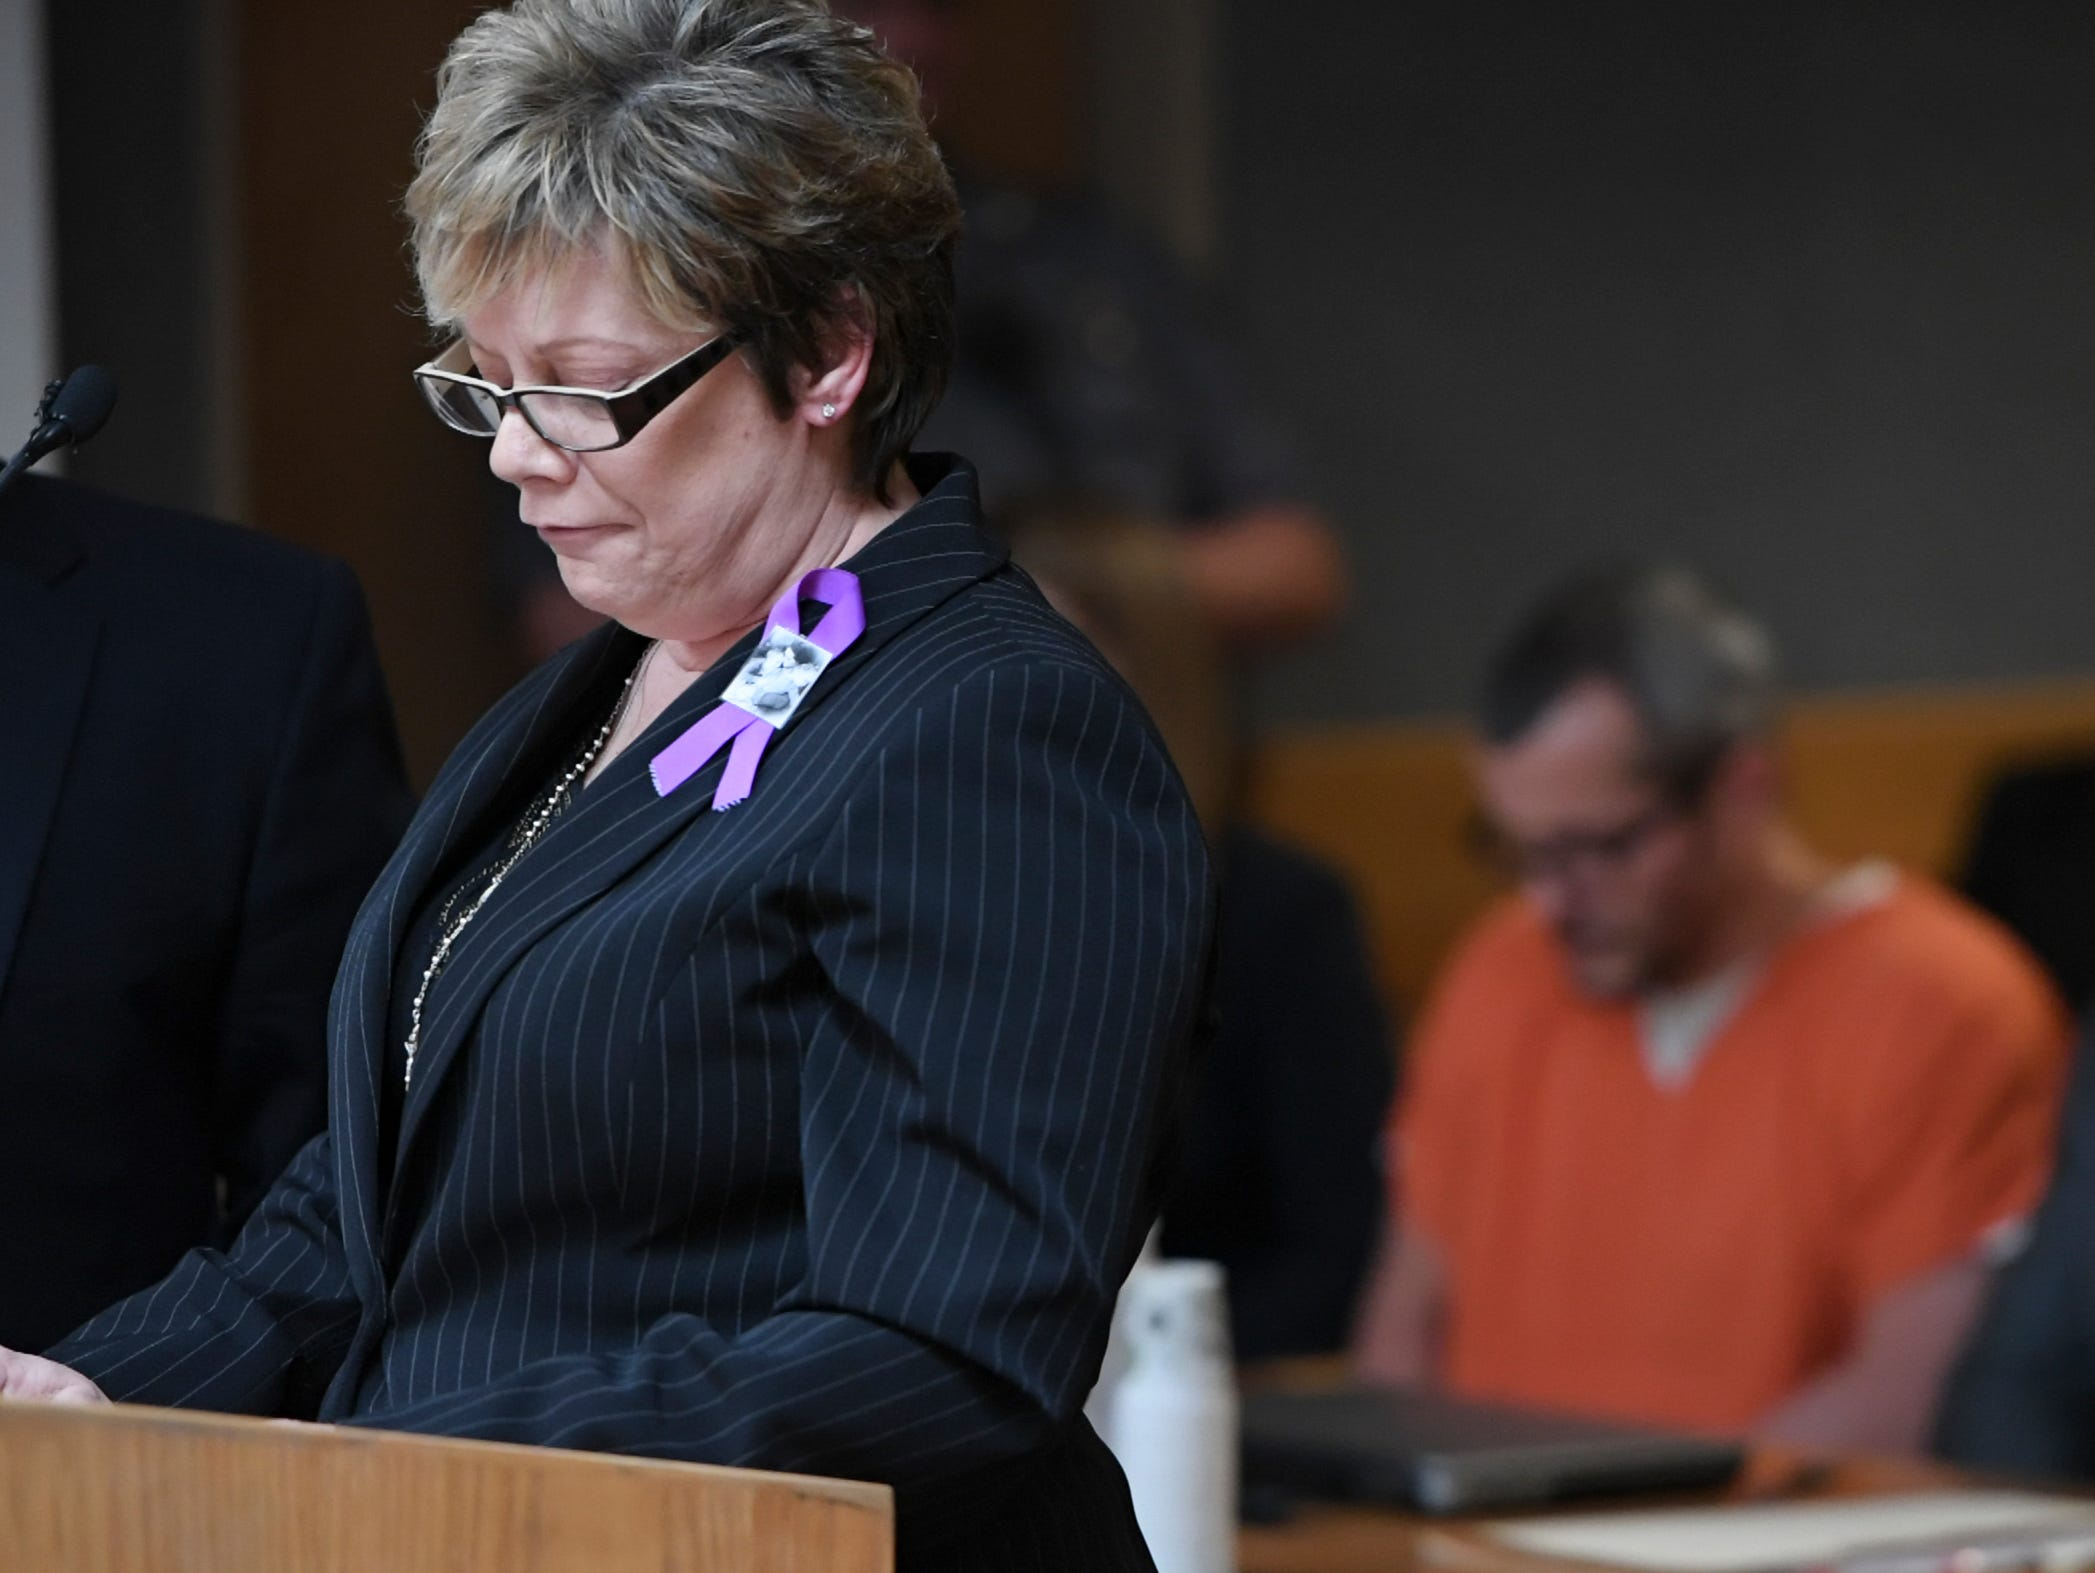 Sandra Onorati Rzucek, the mother of Shanann Watts, reads a statement during court at the Weld County Courthouse on Monday, Nov. 19, 2018 in Greeley, Colo. Christopher Watts received three consecutive life sentences without a chance at parole on Monday, nearly two weeks after pleading guilty to avoid the death penalty. (RJ Sangosti/The Denver Post via AP, Pool)